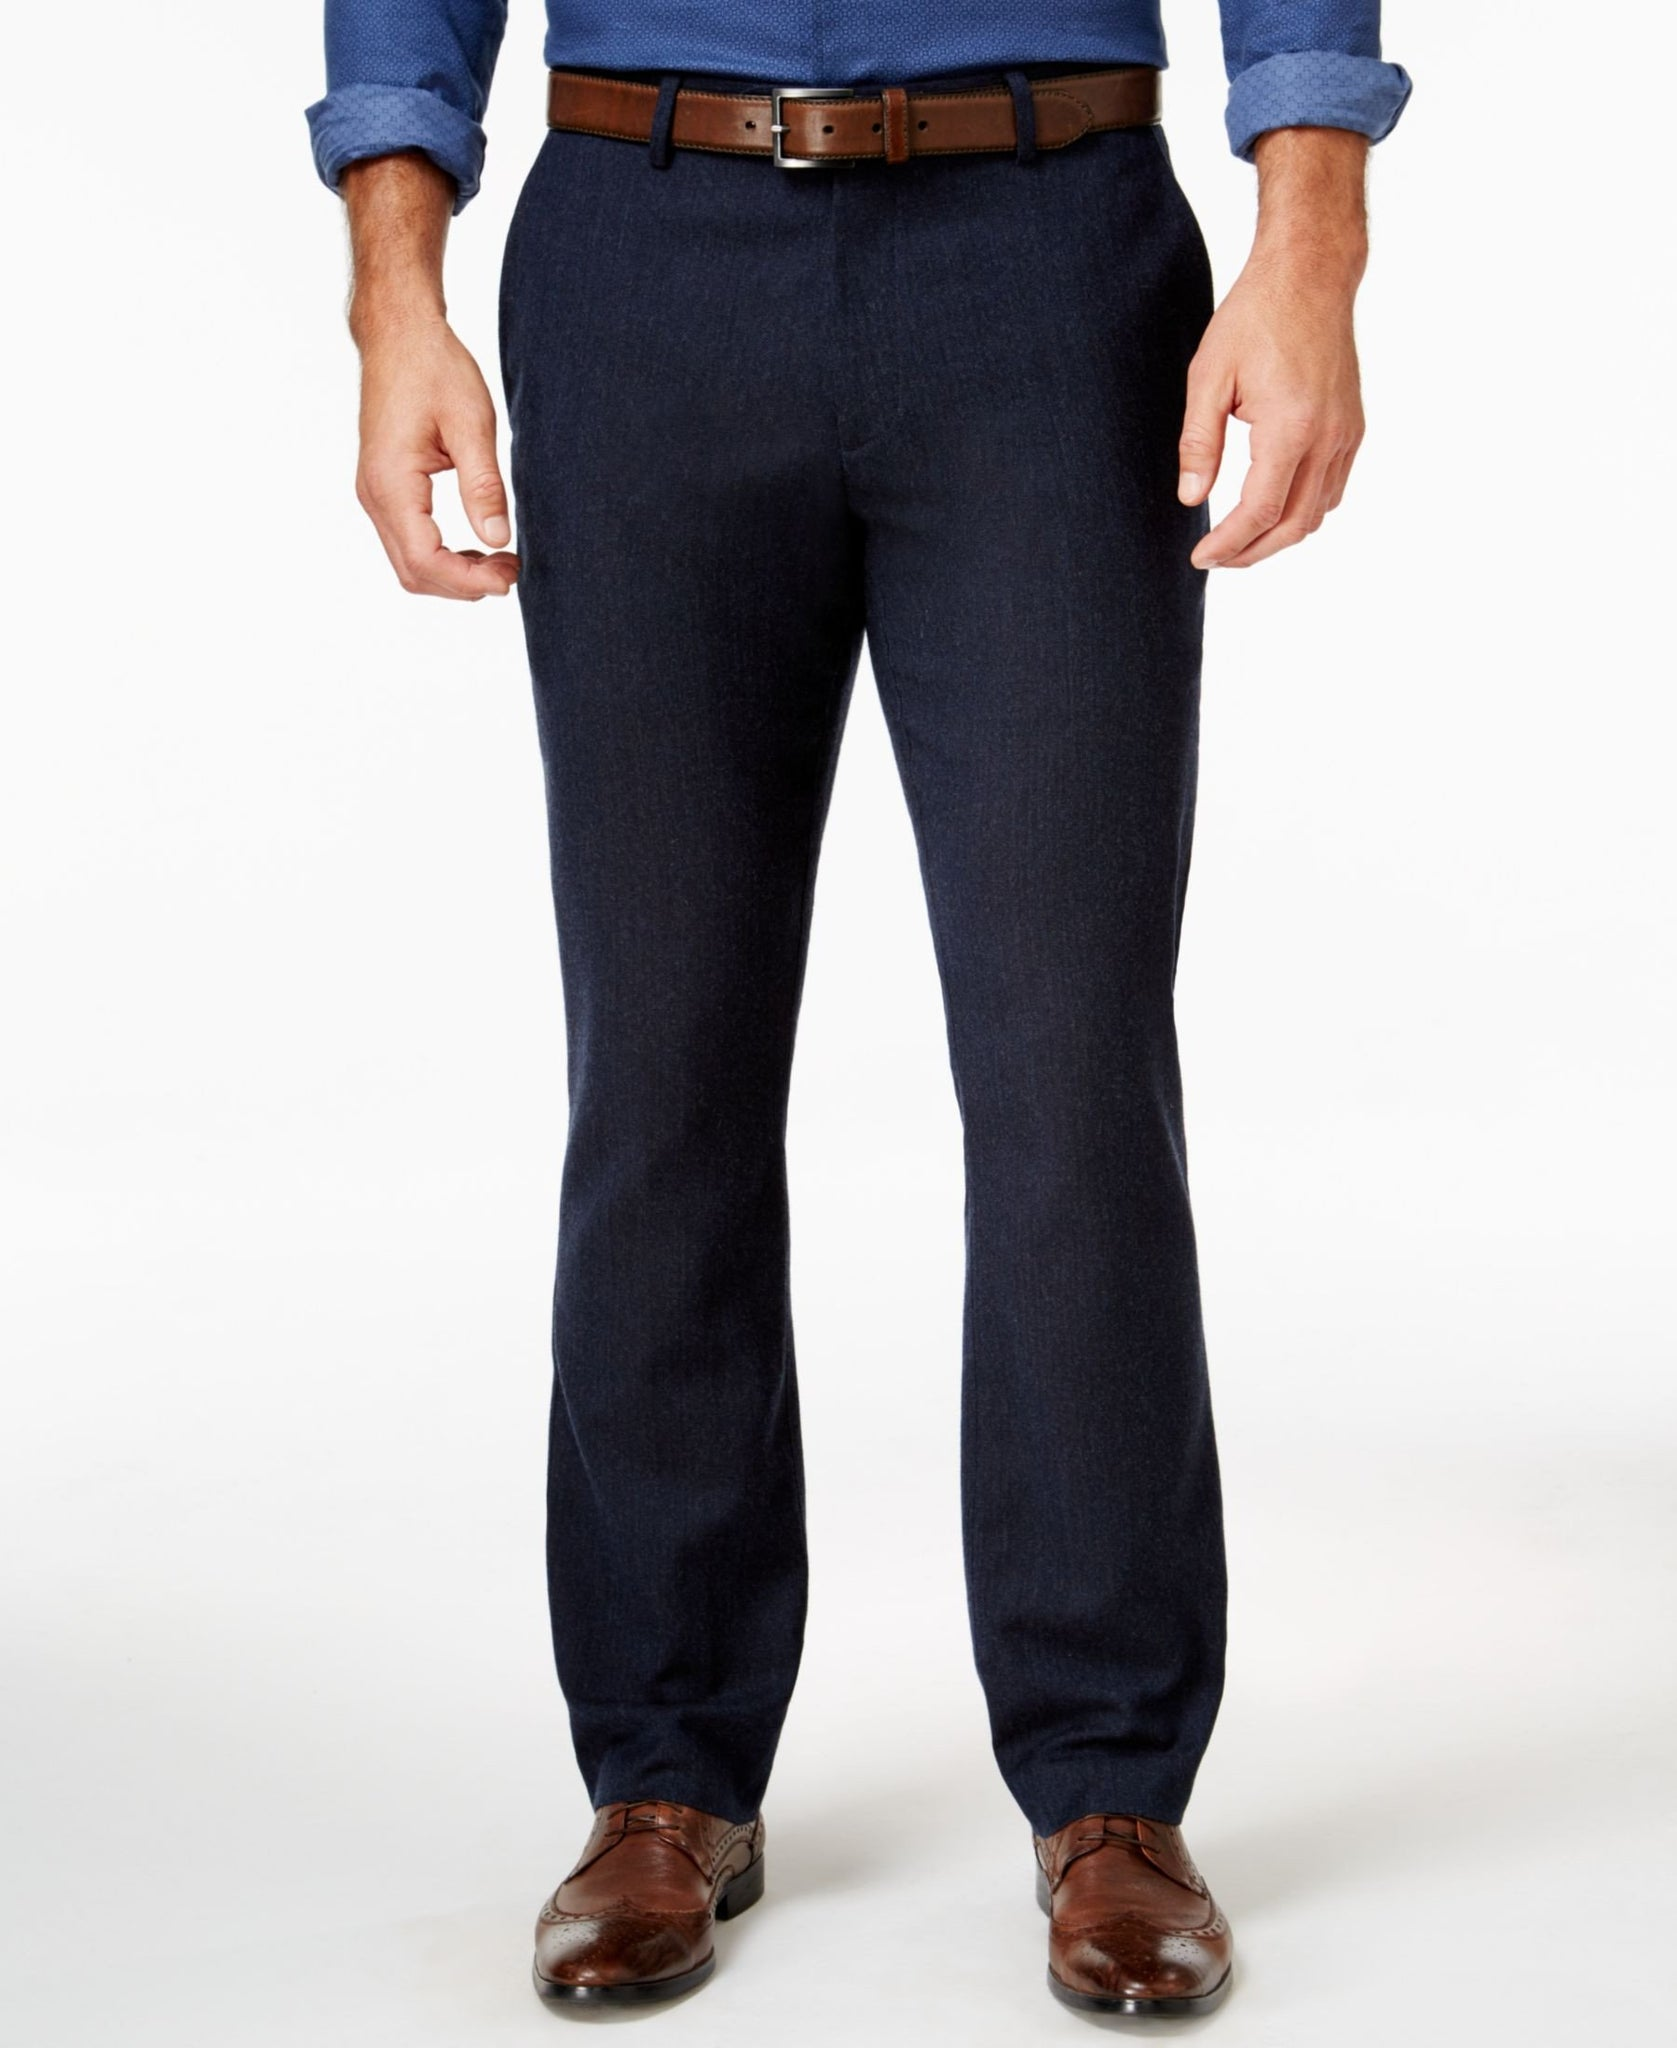 Tasso Elba Men's Cotton Wool Blend Pants